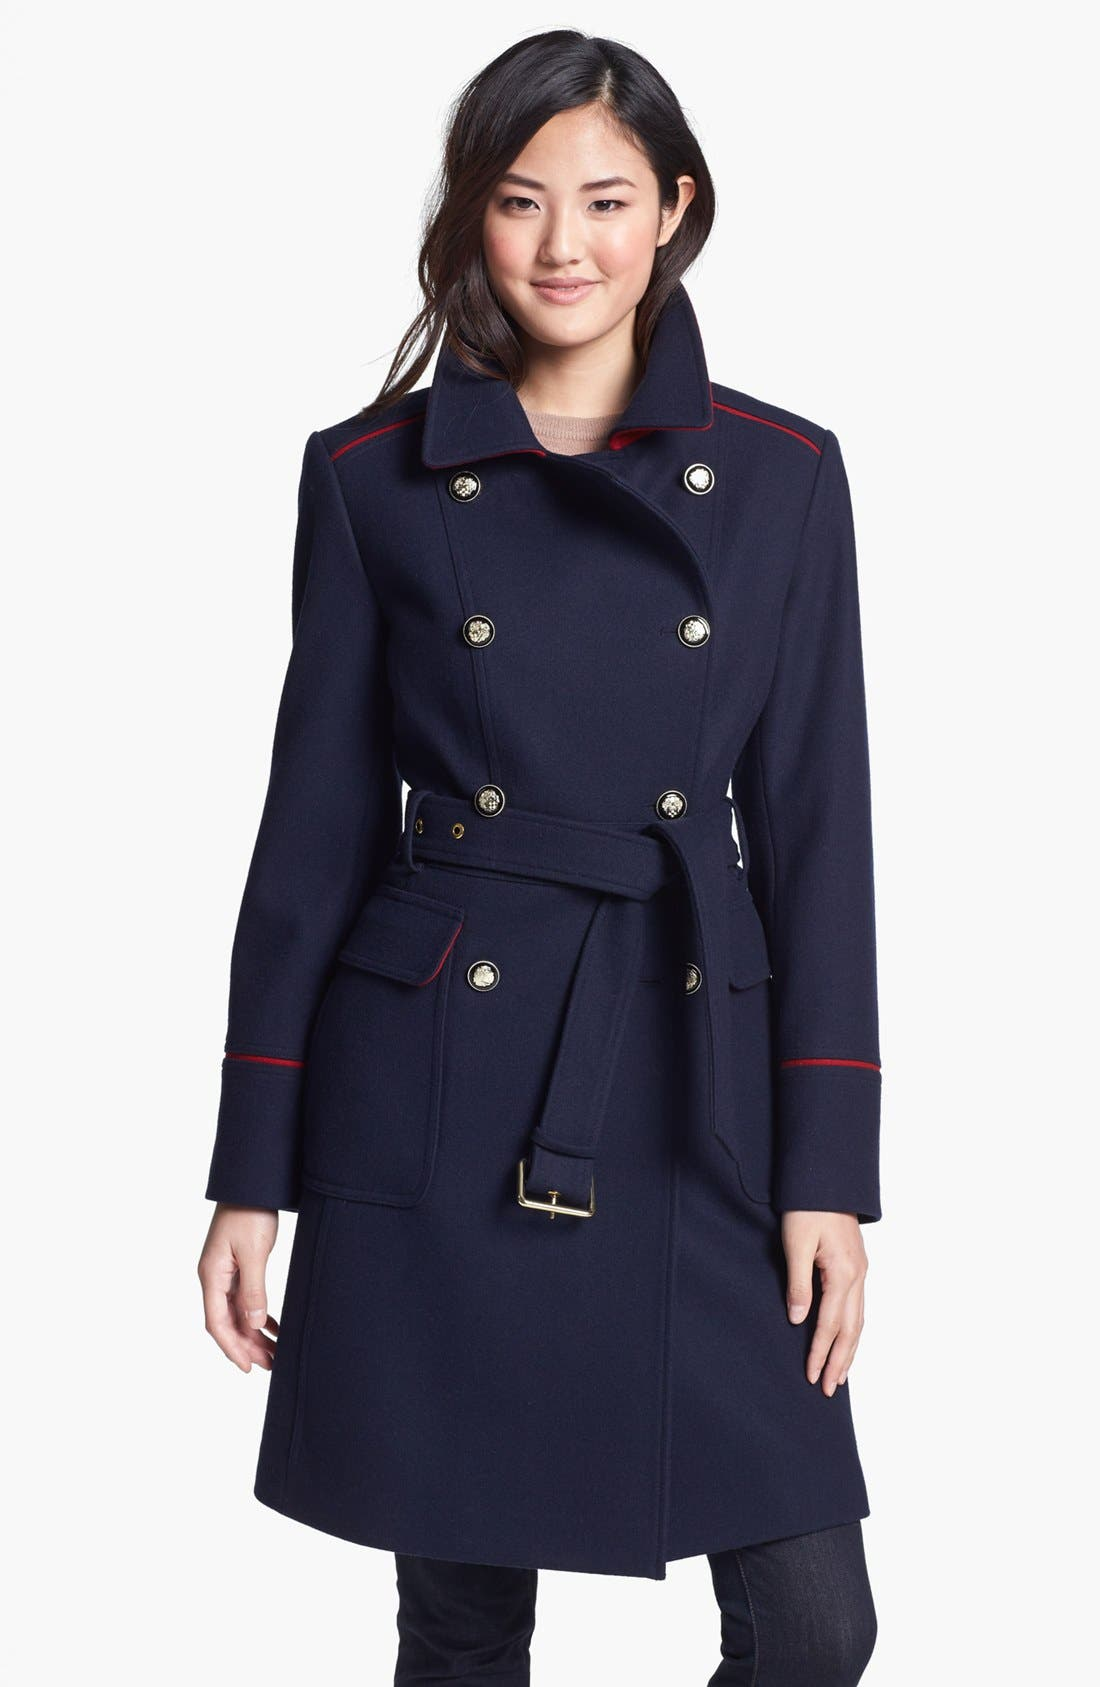 Main Image - Vince Camuto Contrast Piping Belted Military Coat